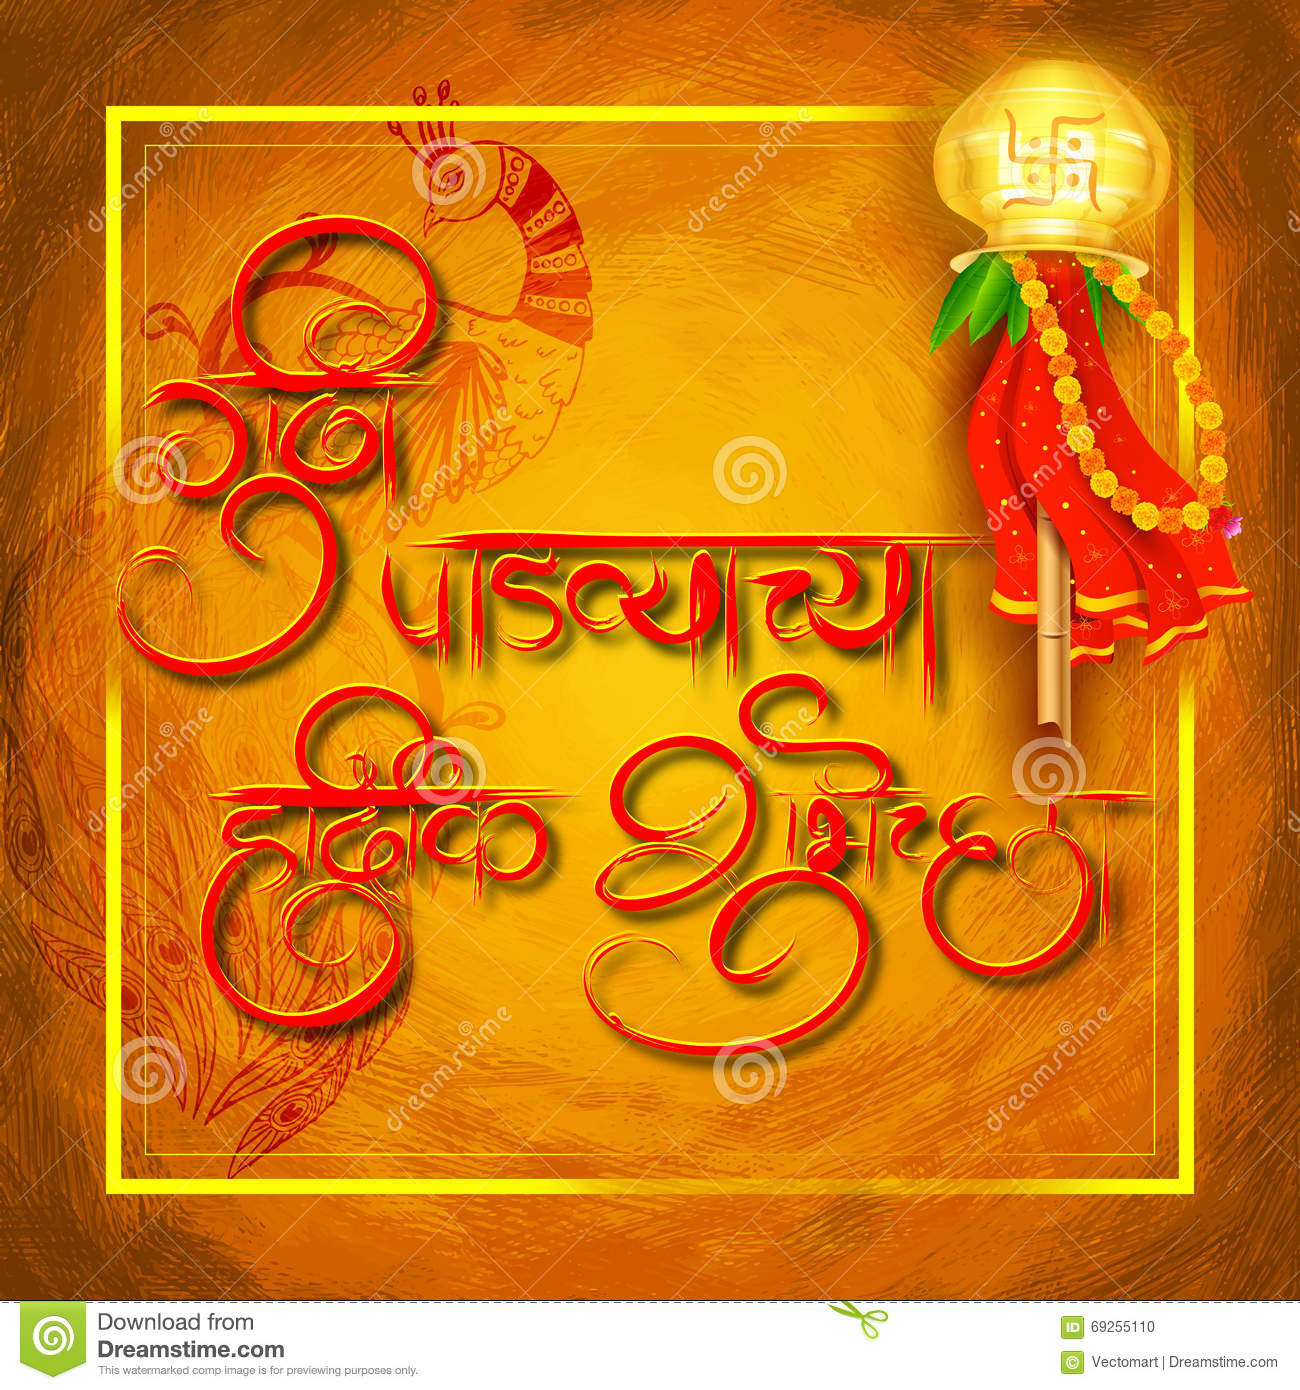 Gudi padwa stock vector illustration of march padva 69255110 illustration of gudi padwa lunar new year celebration of india with message in marathi gudi padwachi hardik shubhechha meaning heartiest greetings of m4hsunfo